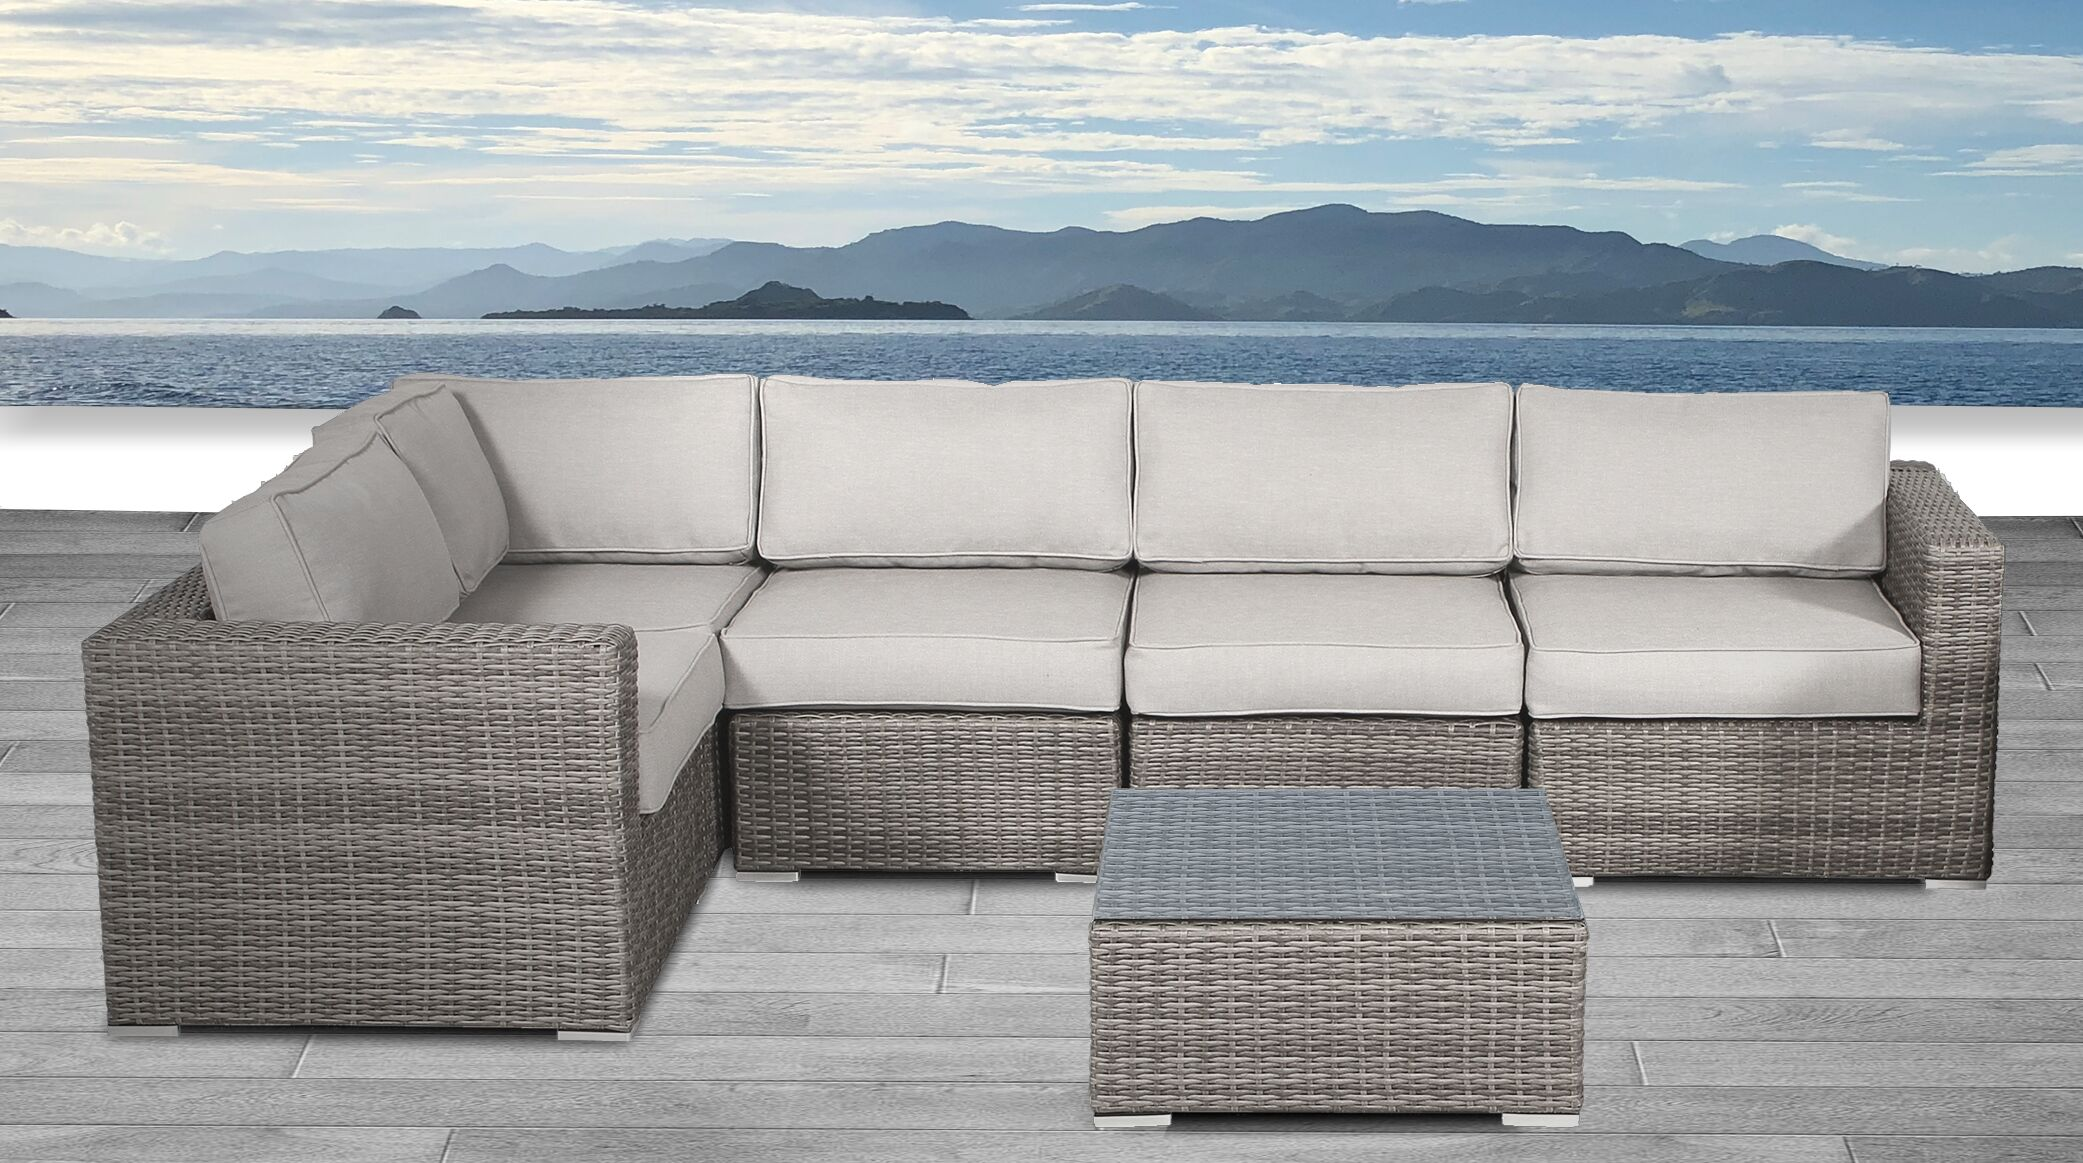 Whitmer 6 Piece Rattan Sectional Seating Group with Cushions Frame Color: Gray